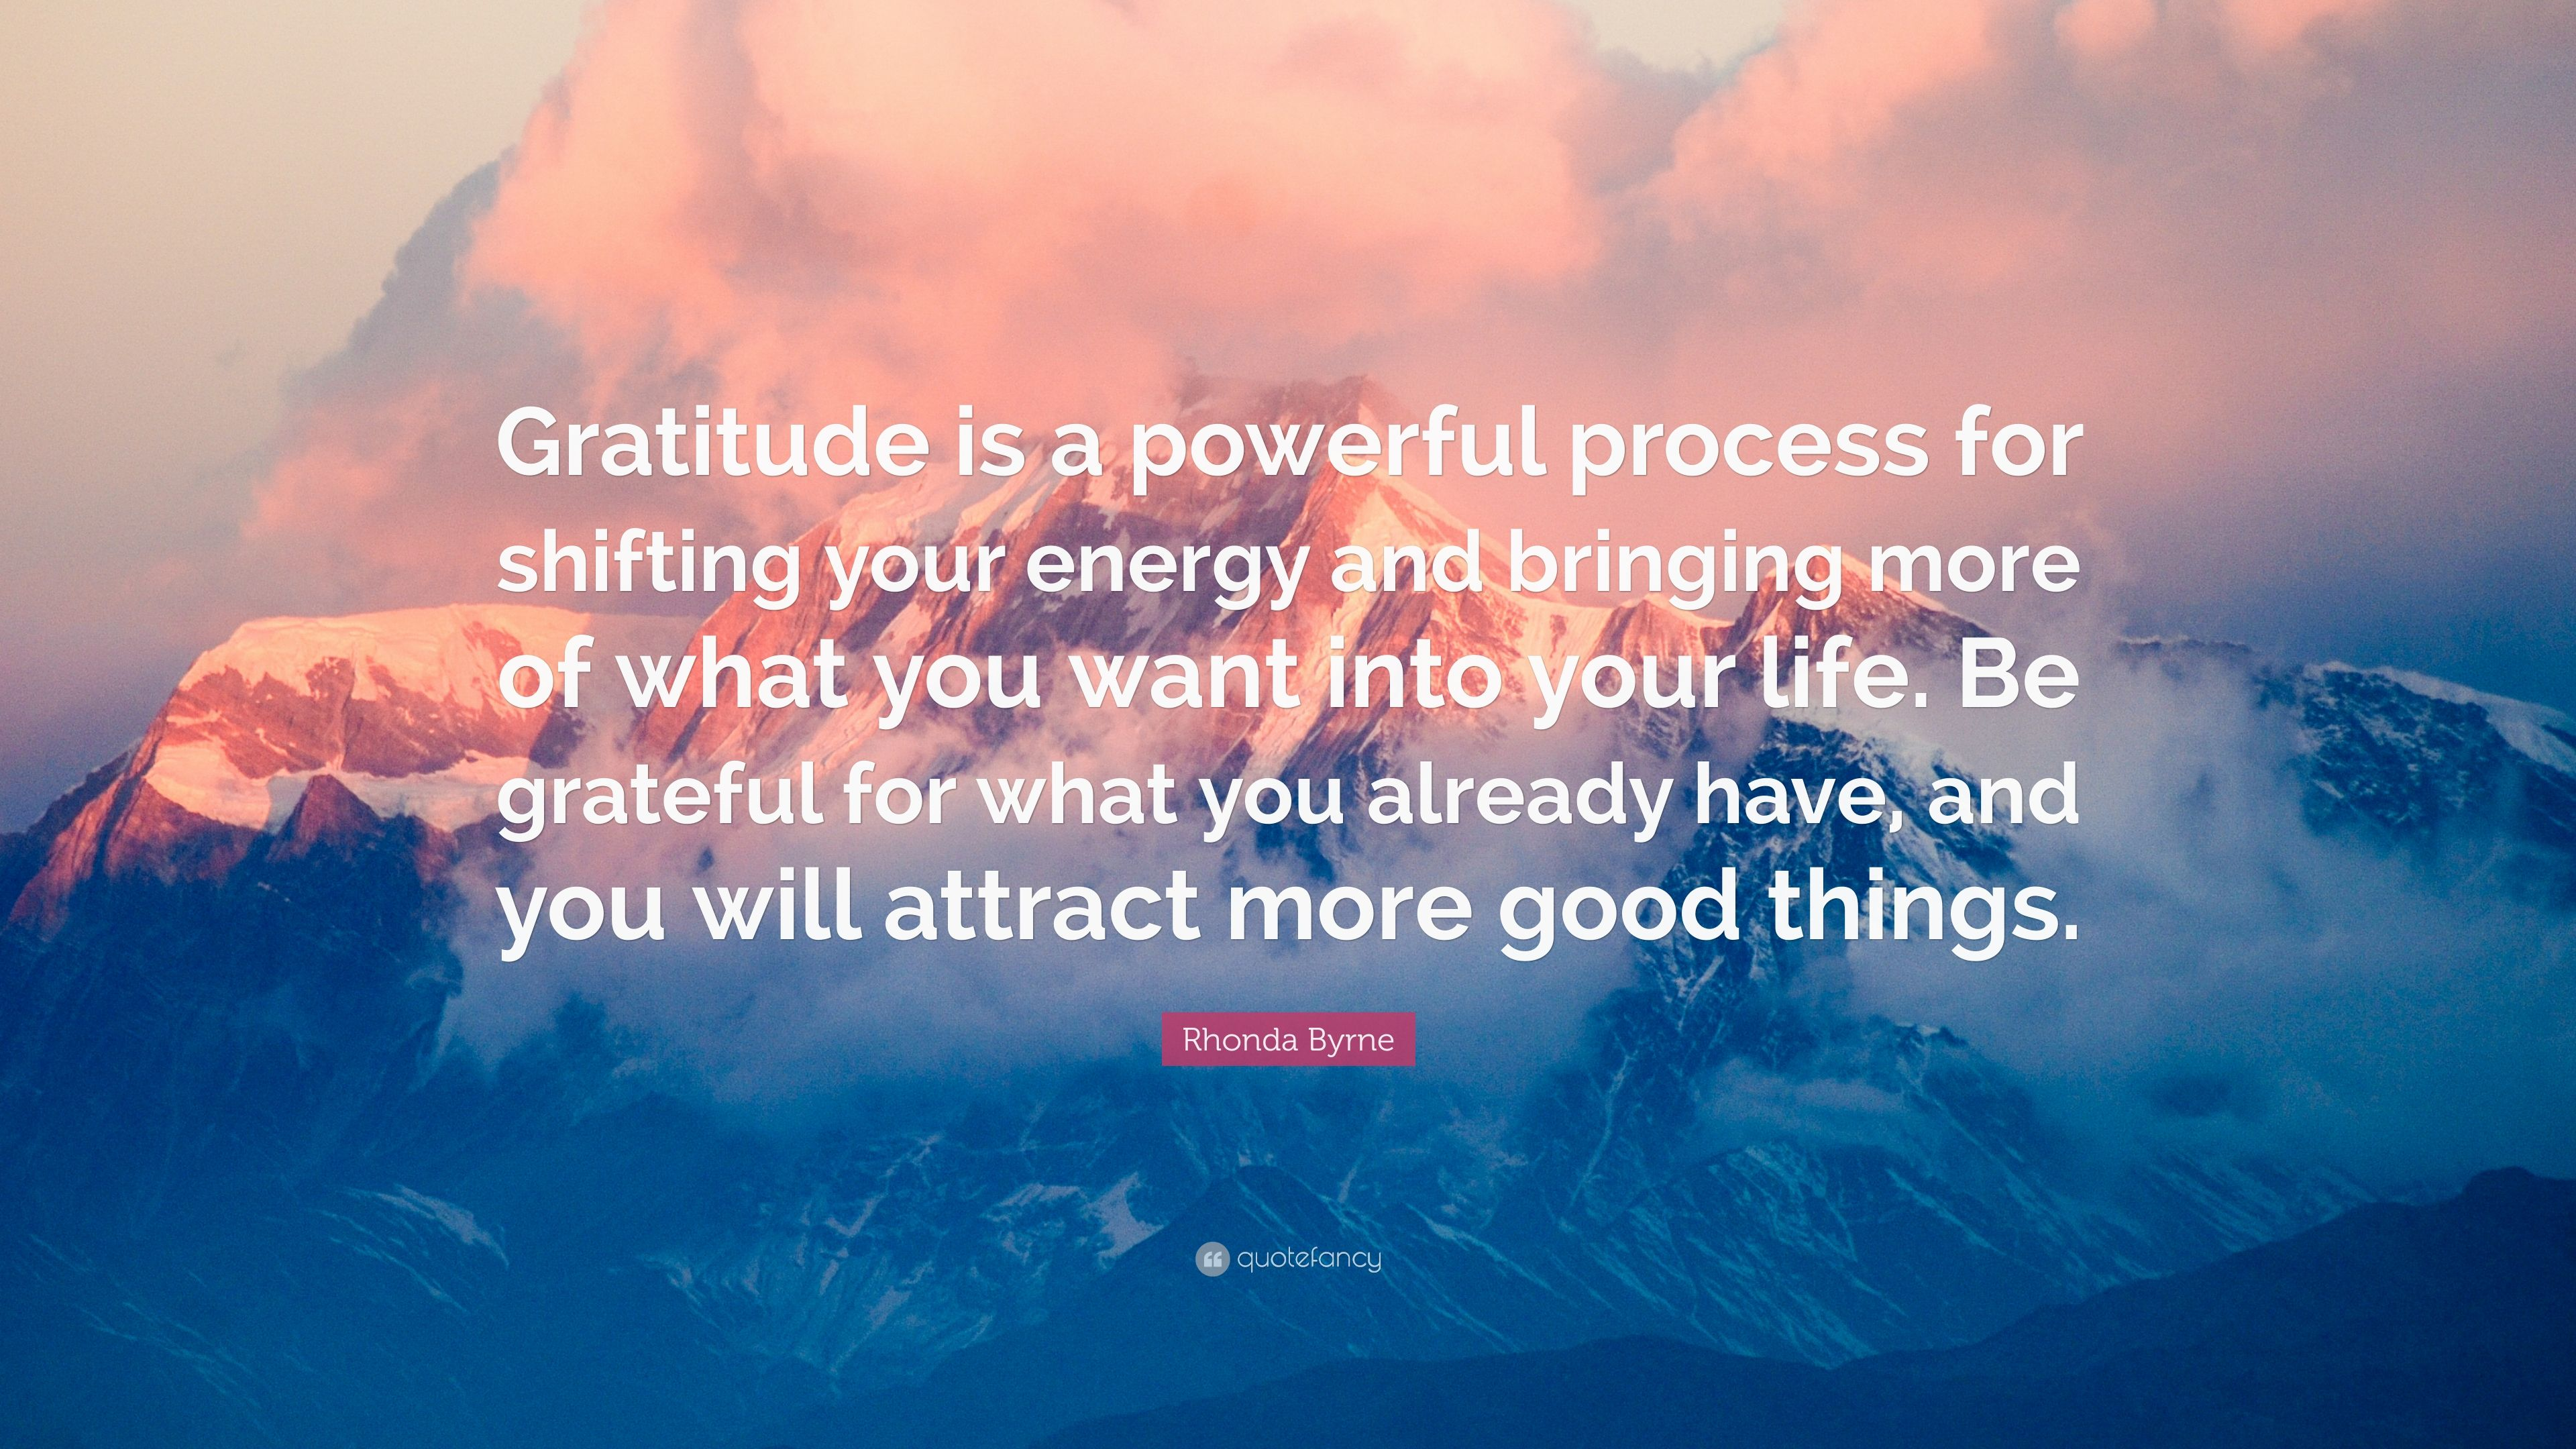 Charming Rhonda Byrne Quote: U201cGratitude Is A Powerful Process For Shifting Your  Energy And Bringing